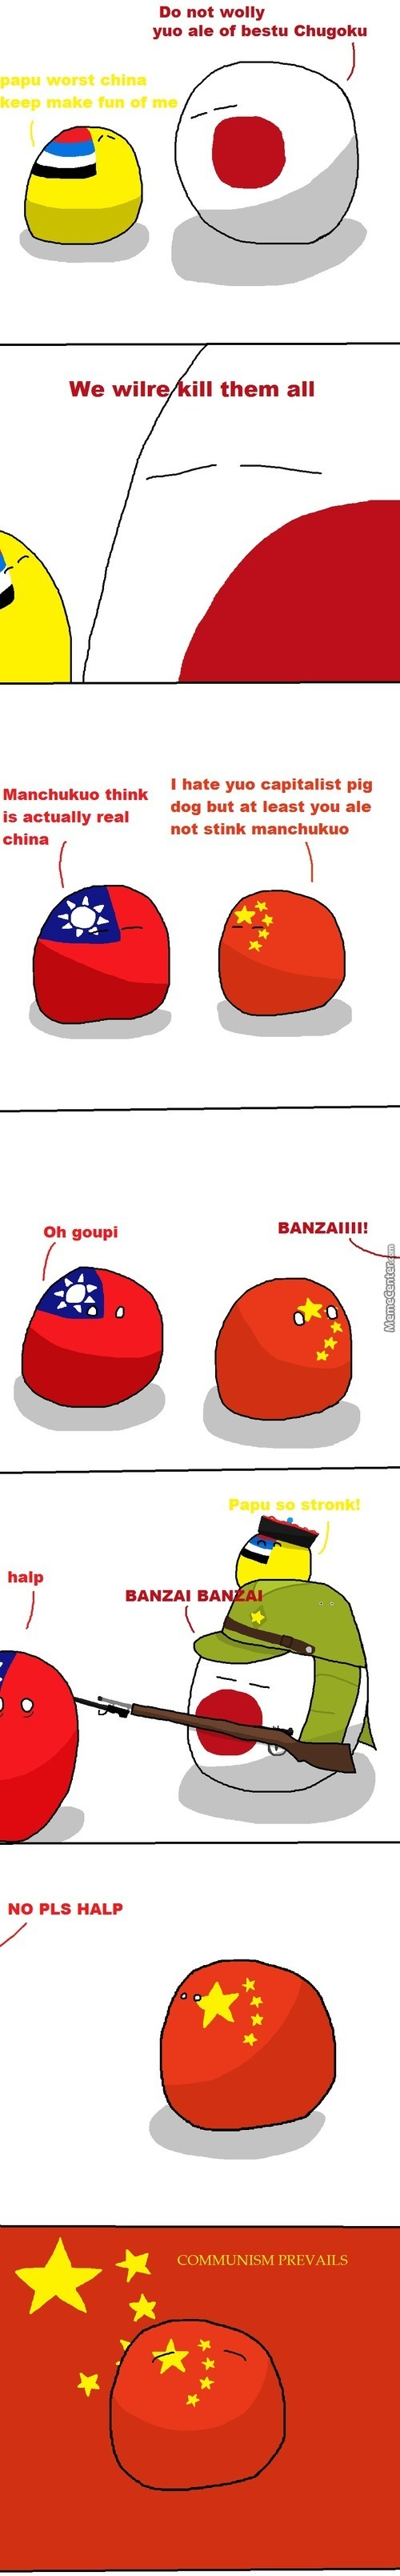 How The Prc Won The War